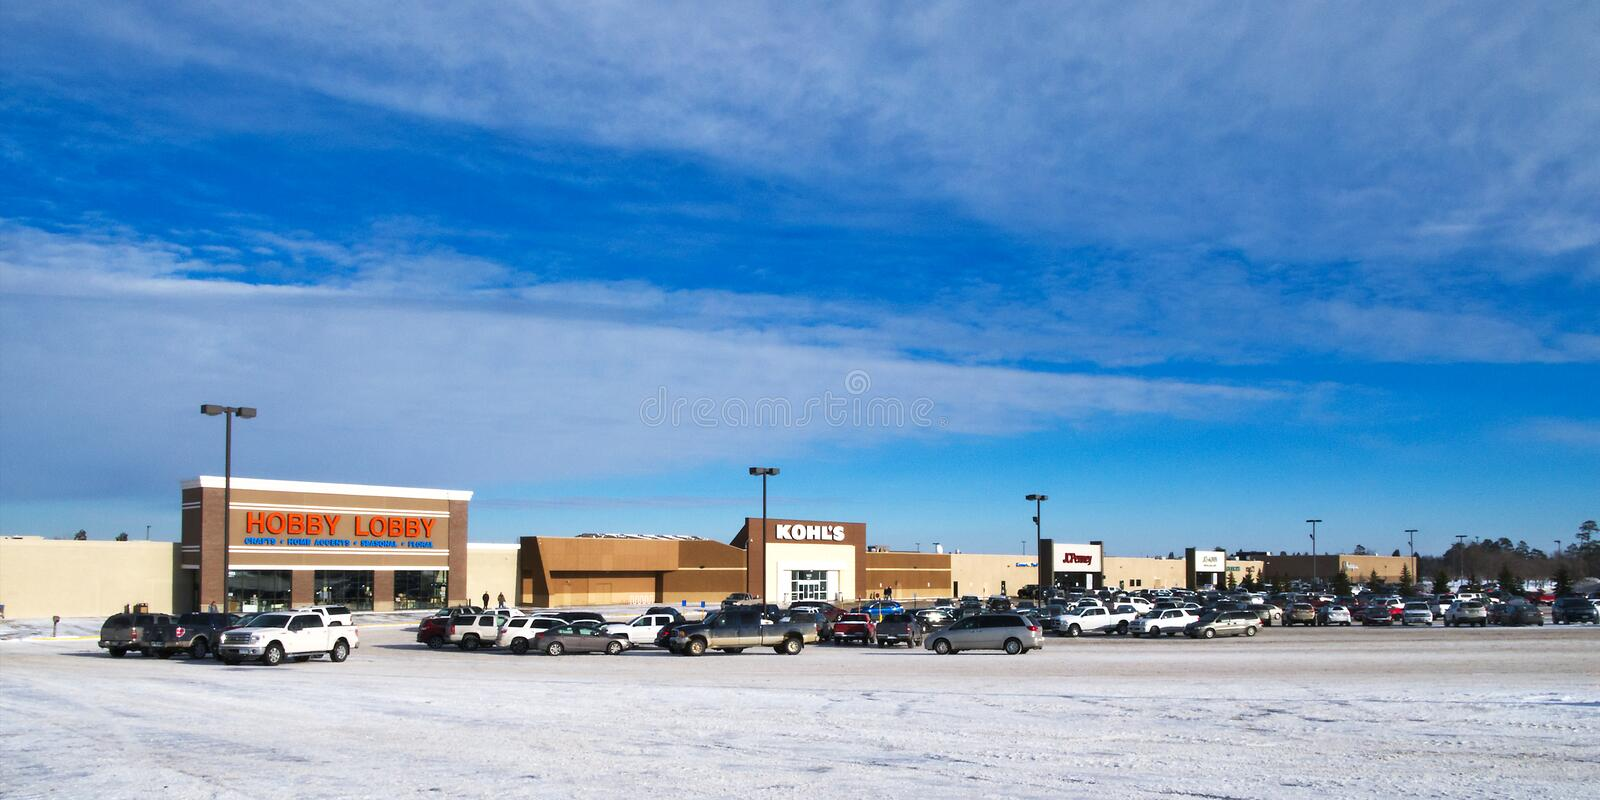 BEMIDJI, MN - 24 DEC 2018: Paul Bunyan Mall and parking lot in winter. Partially blue skies and vehicles are seen stock photos